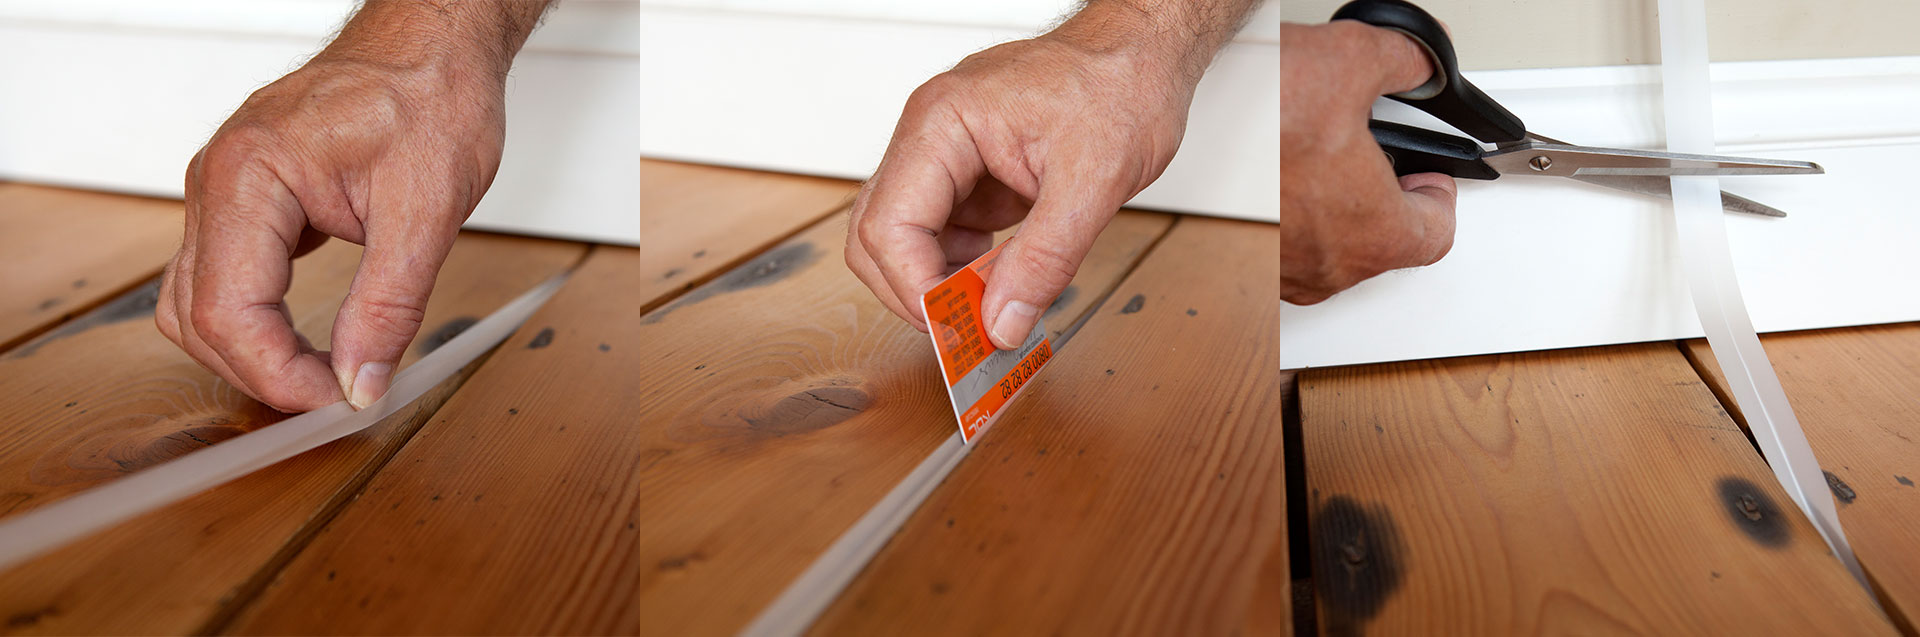 Fitting StopGap. Starting at one end if gap, fold strip along crease, and using a plastic card, push into gap with V downwards until contact with joist below. Cut to length at far end of gap